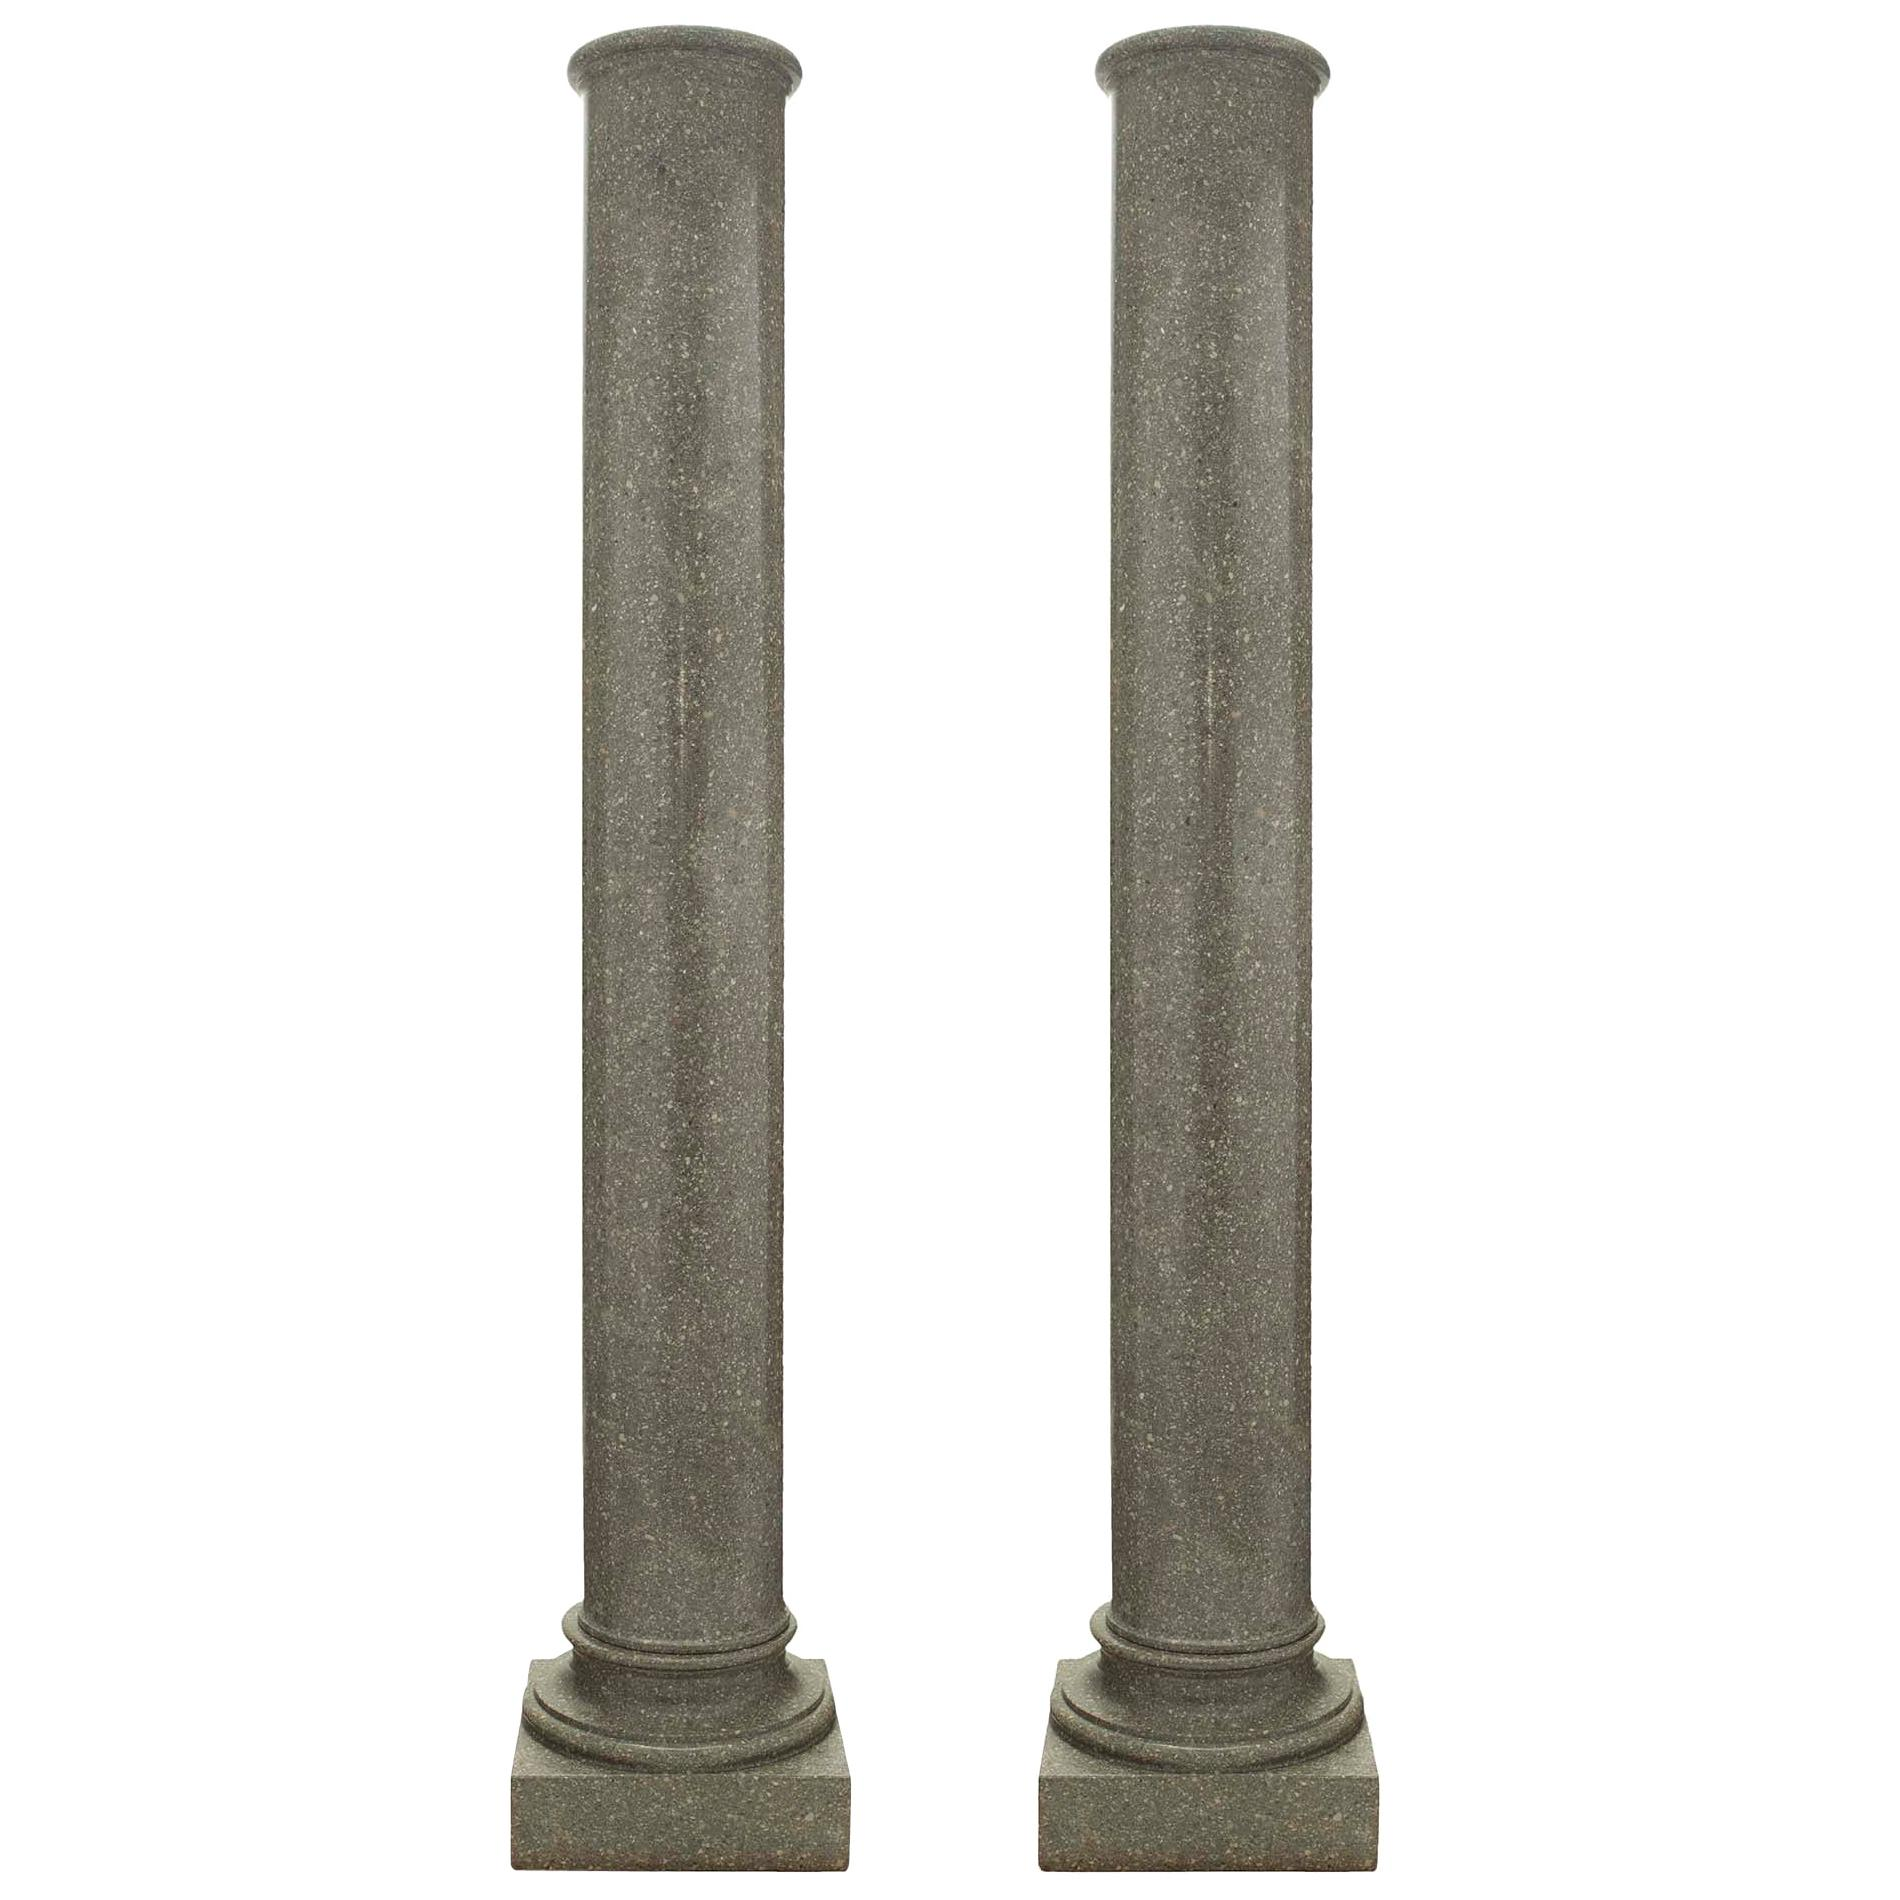 Pair of Italian 19th Century Neoclassical Style Granite Columns